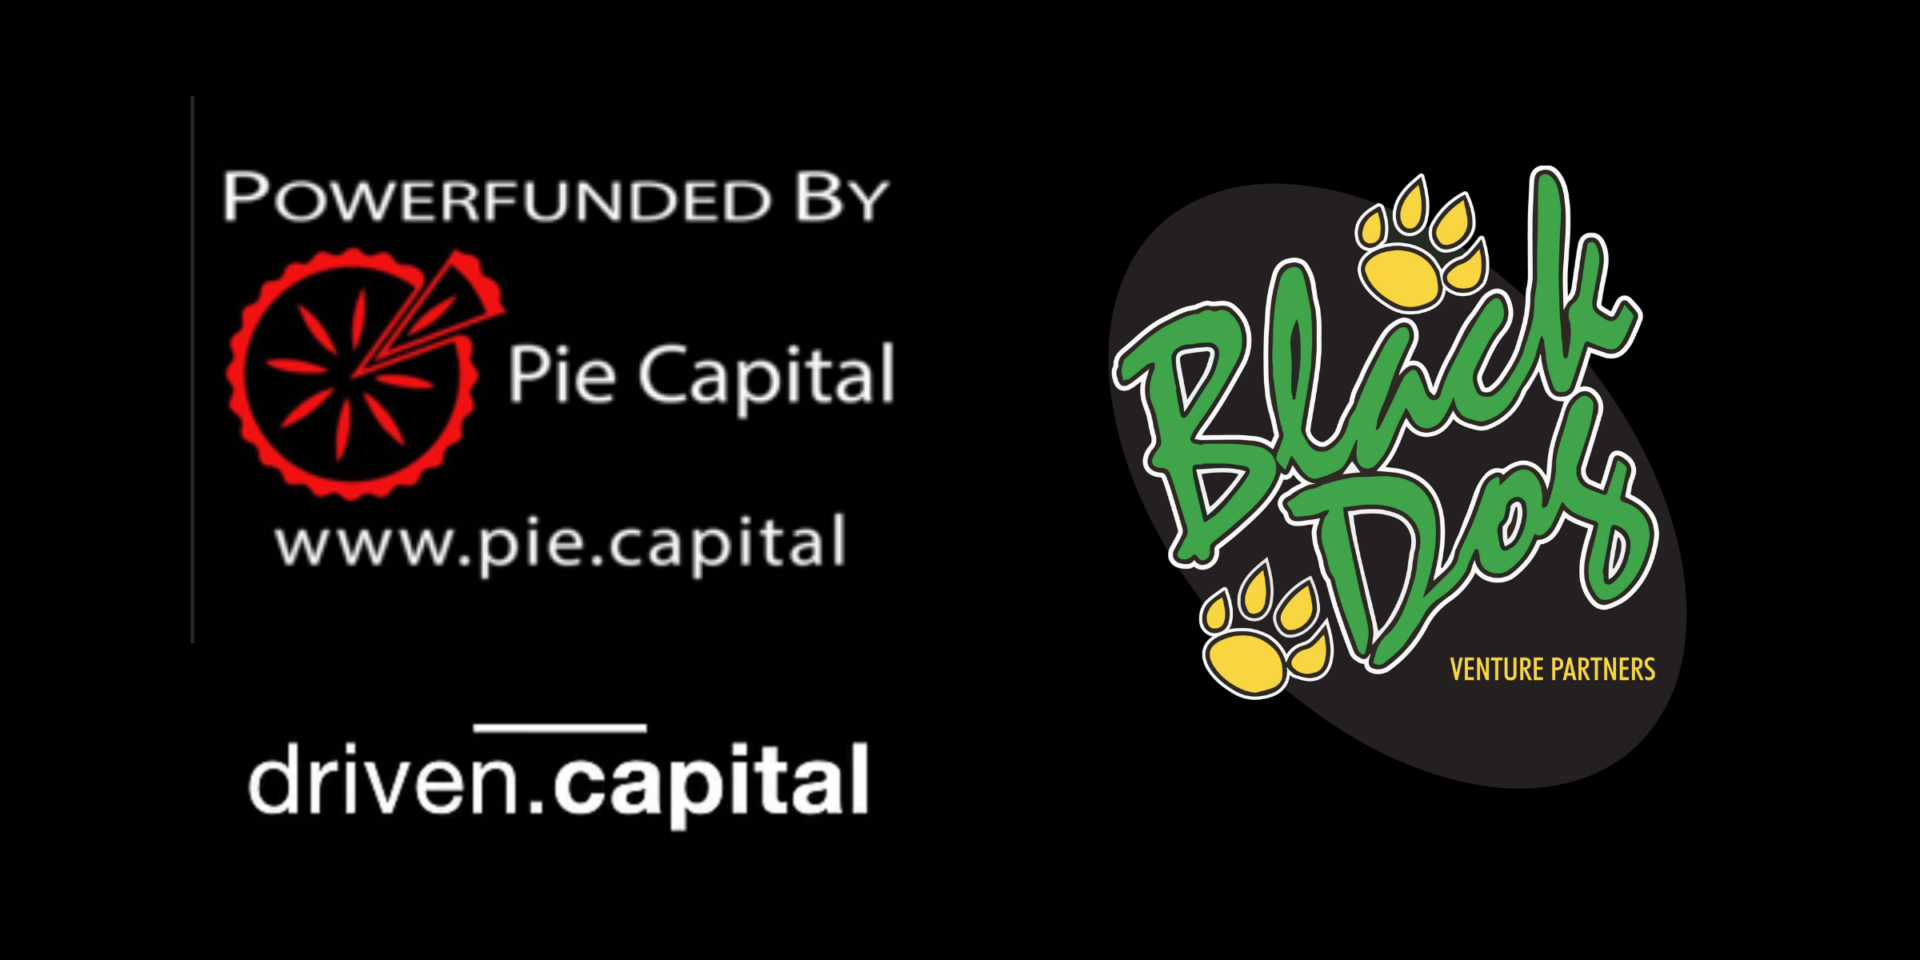 Black Dog Venture Partners Licenses AutoVetVC From Pie Capital